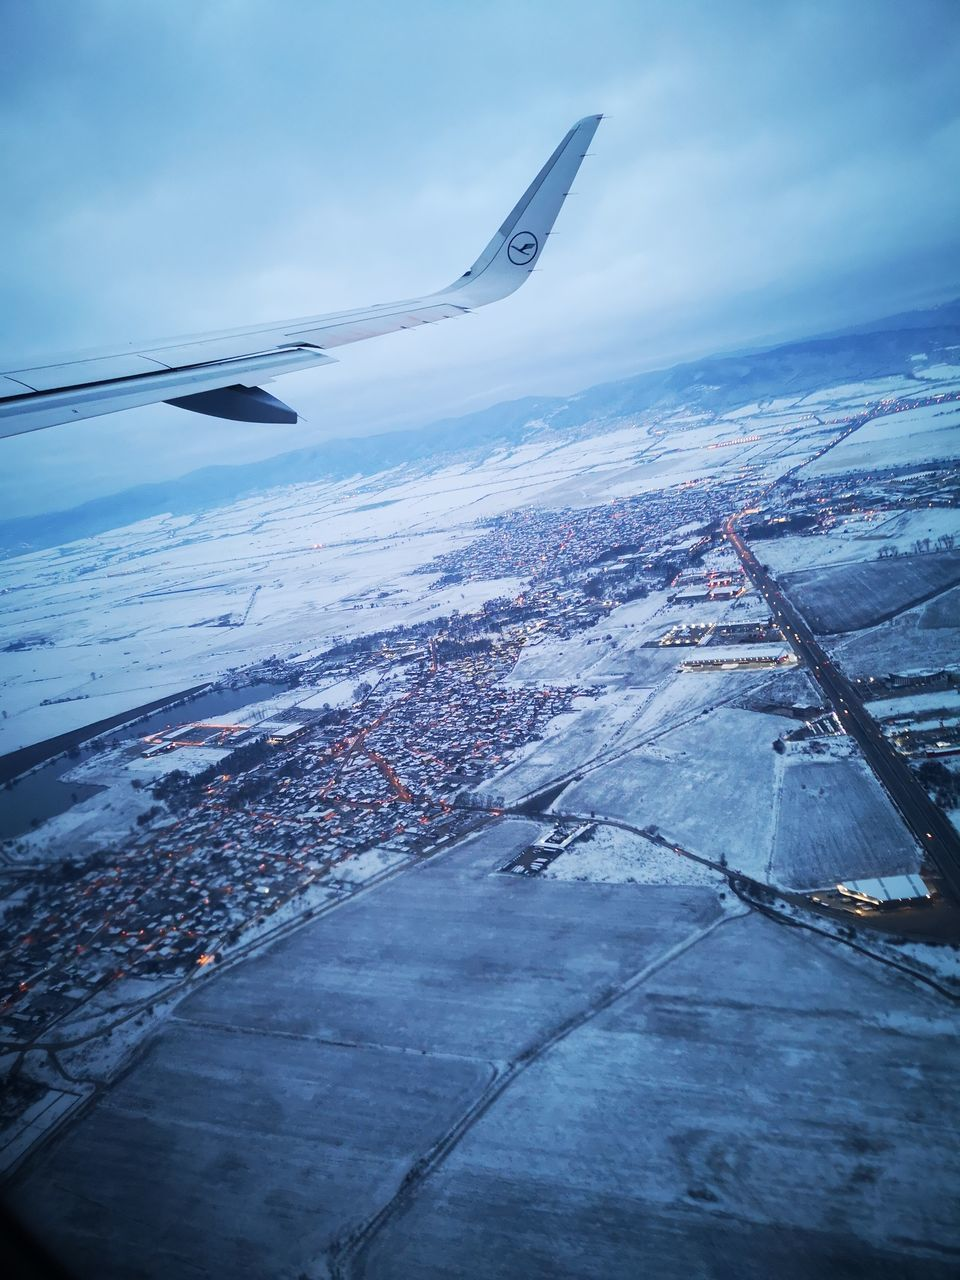 AERIAL VIEW OF AIRPLANE FLYING OVER SEA DURING WINTER